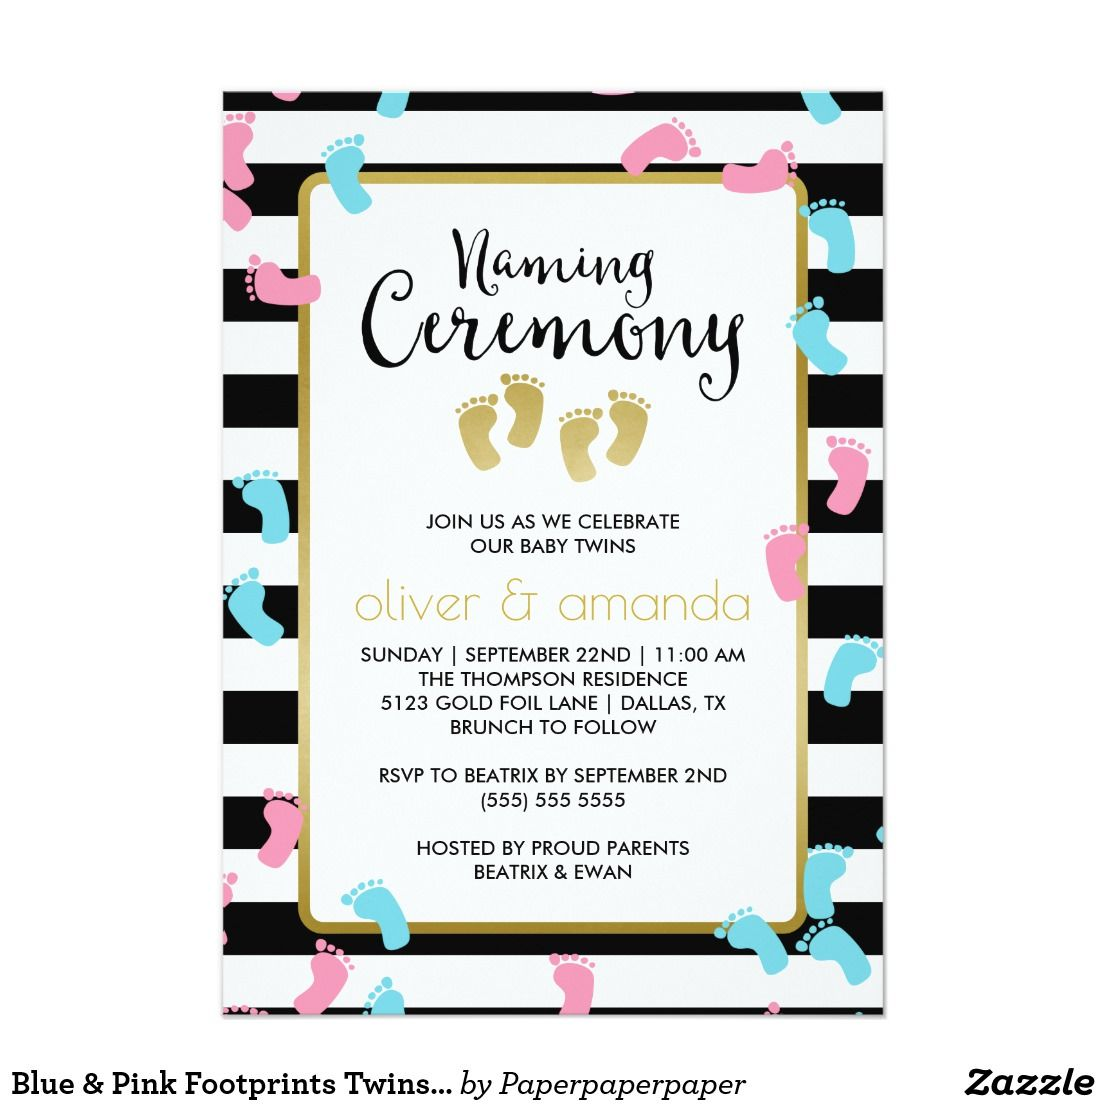 Blue Pink Footprints Twins Naming Ceremony Invitation